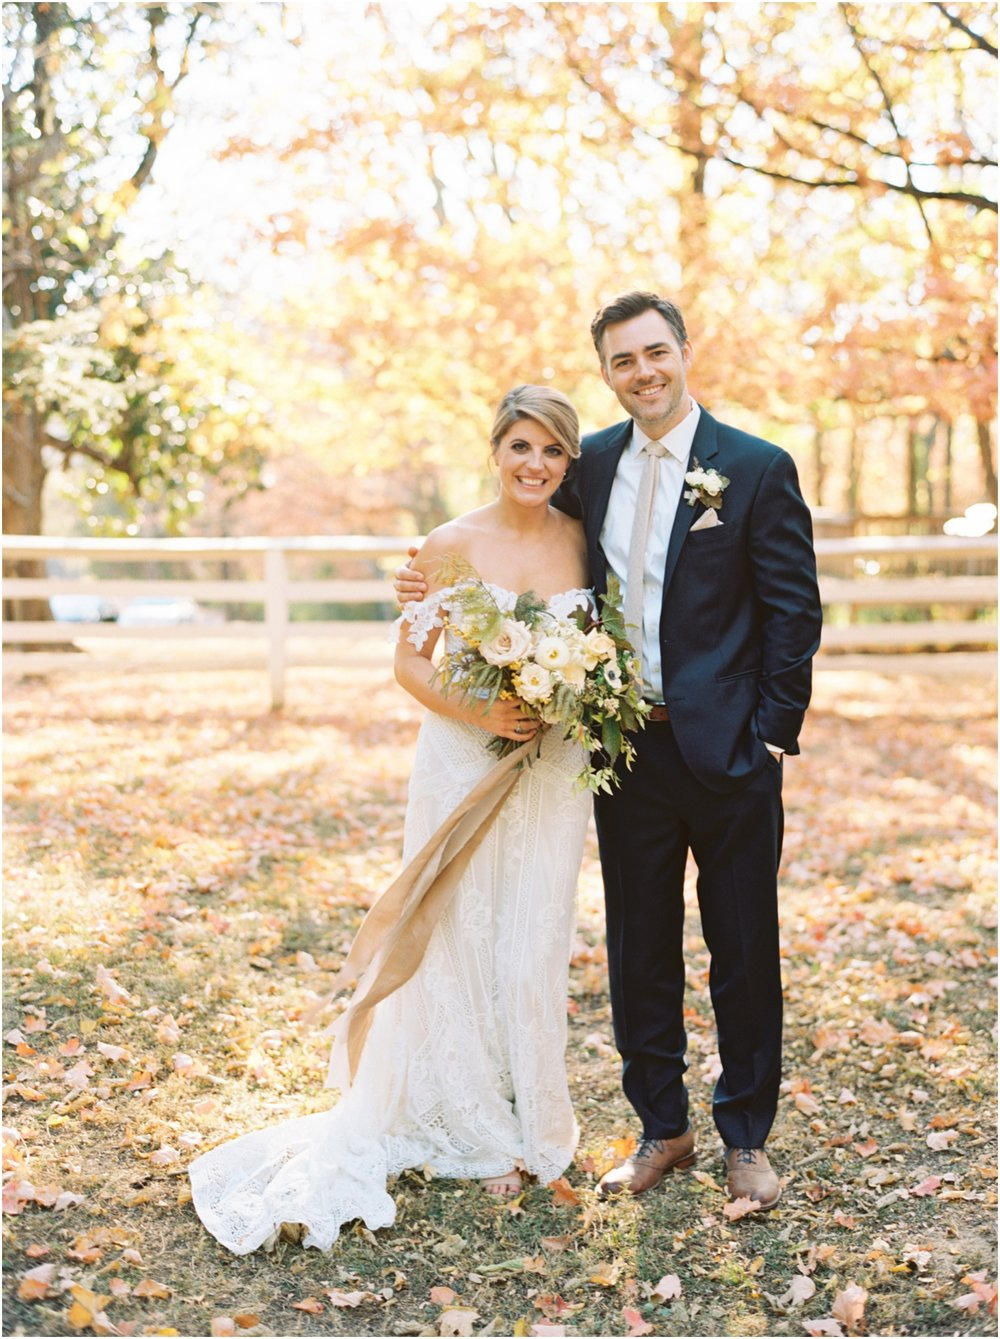 Perfect Fall Nashville Wedding